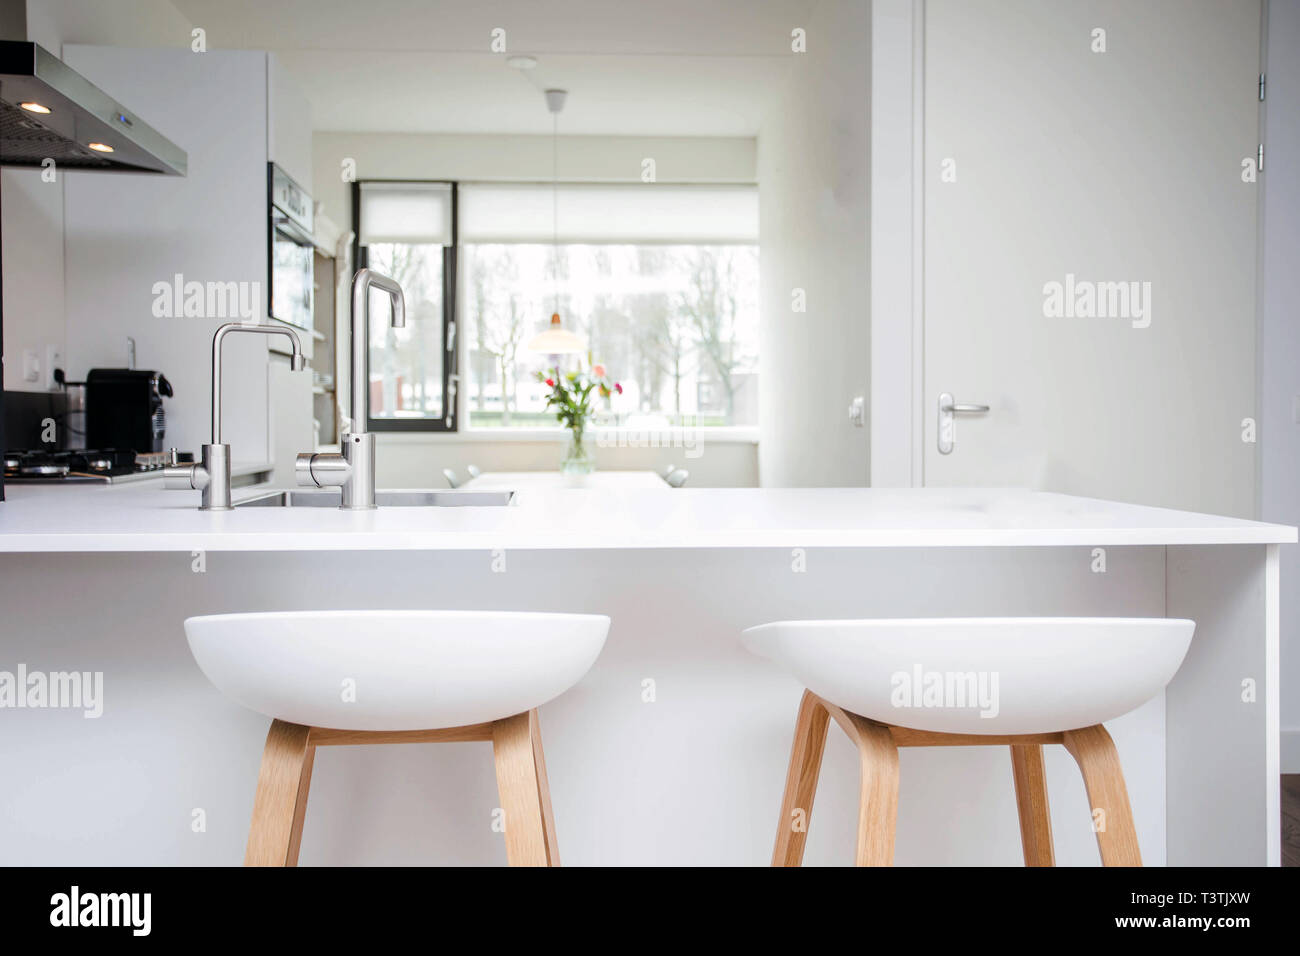 Kitchen Island And Stools High Resolution Stock Photography And Images Alamy